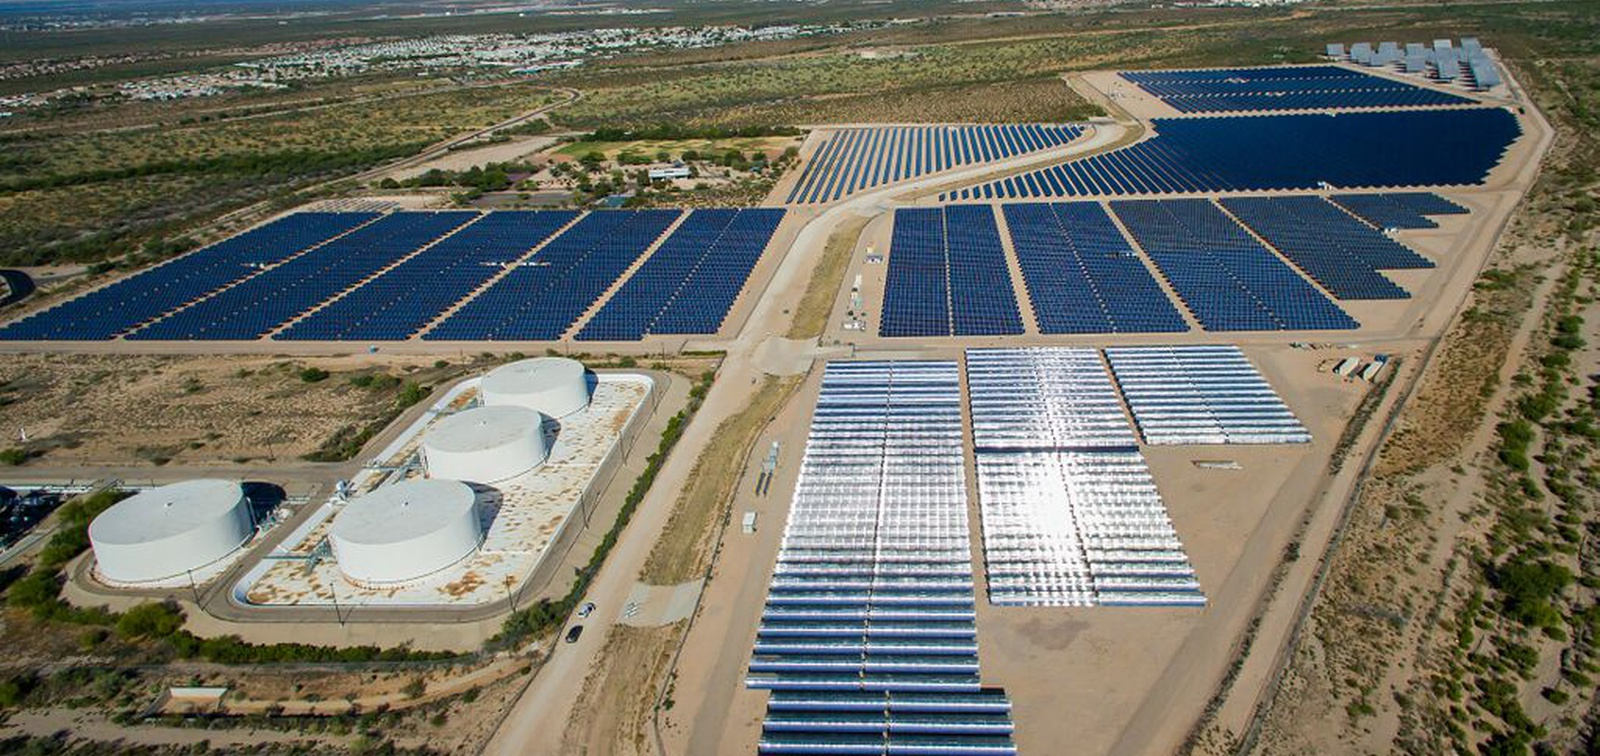 Consumer demand prompts aggressive shift toward renewable energy at Tuscon Electric Power